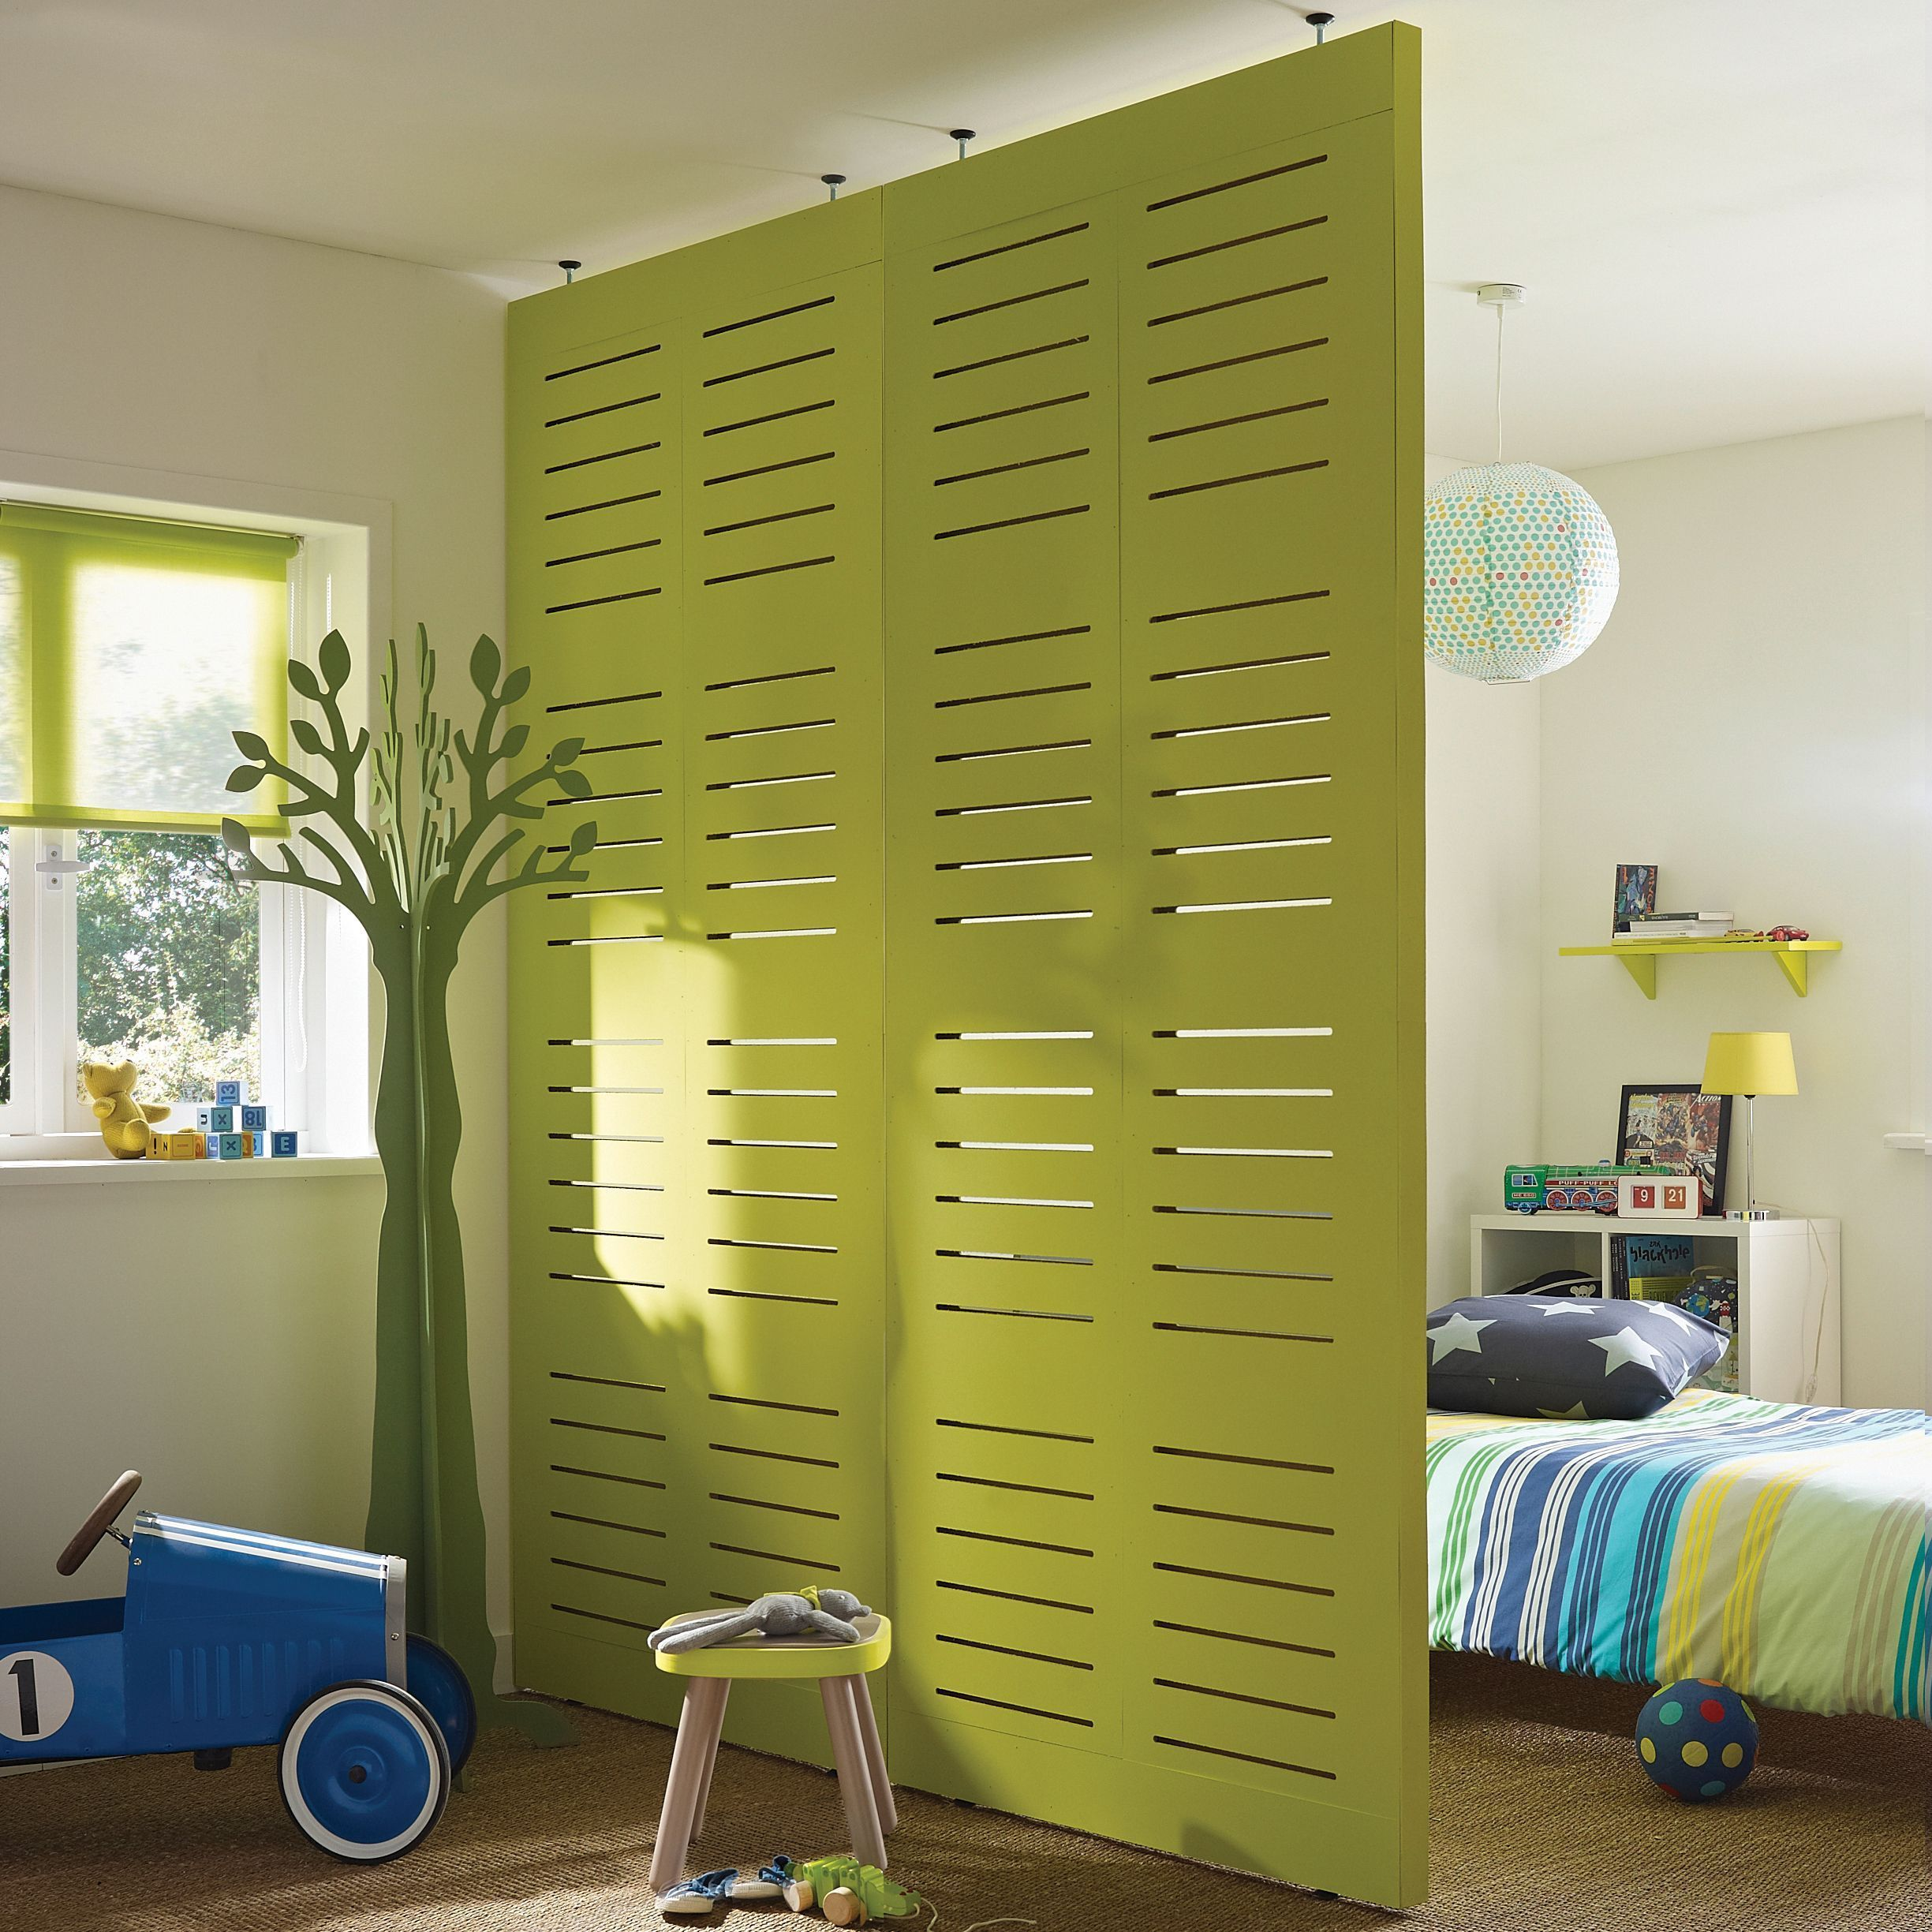 Karalis Room Divider B Q For All Your Home And Garden Supplies And Advice On All The Latest Diy Room Divider Ideas Bedroom Bedroom Divider Kids Room Divider